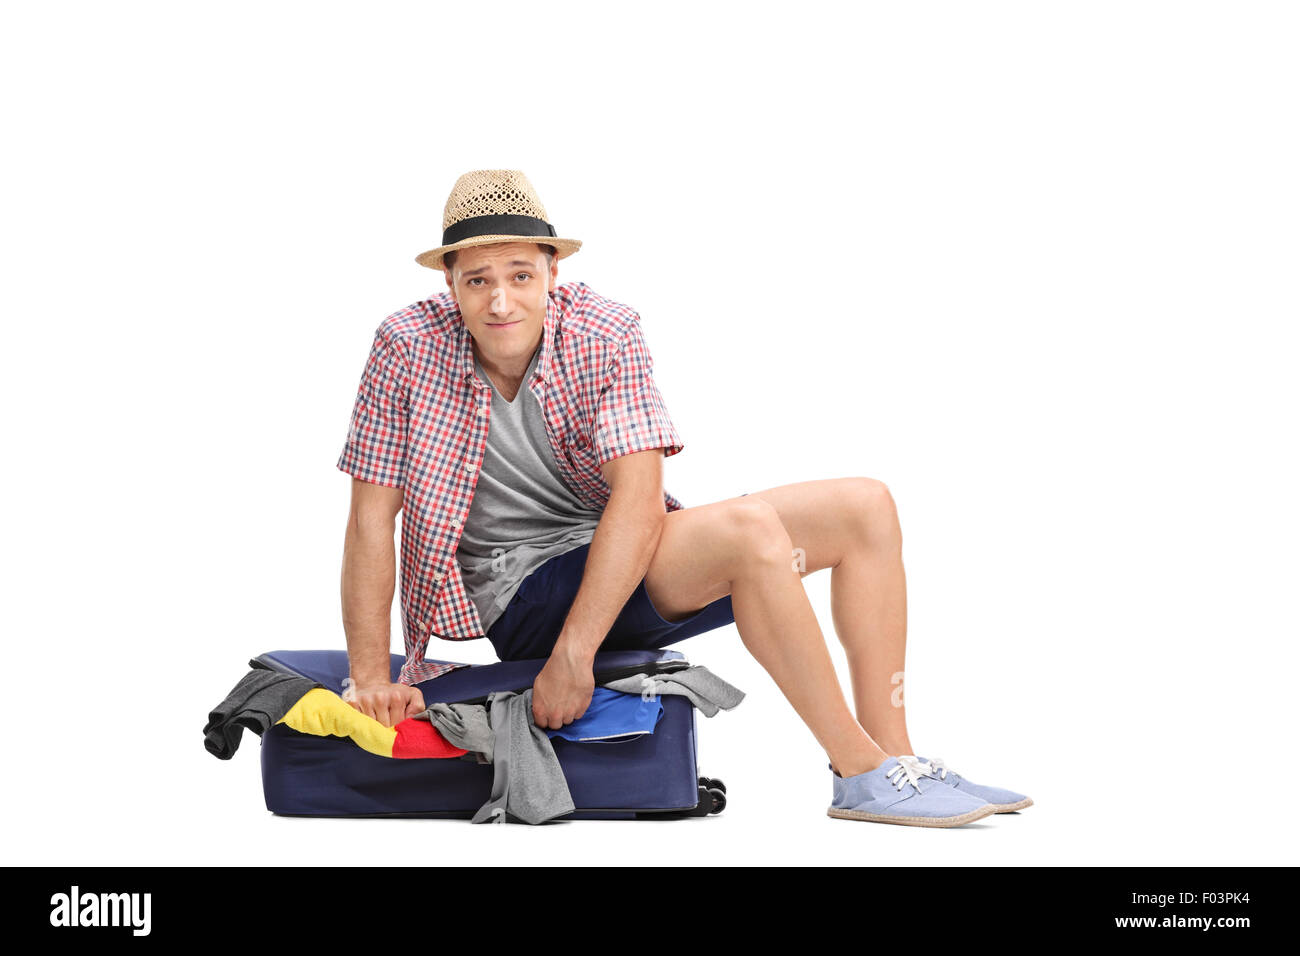 Sad young male tourist sitting on top of a packed suitcase and trying to close it isolated on white background - Stock Image